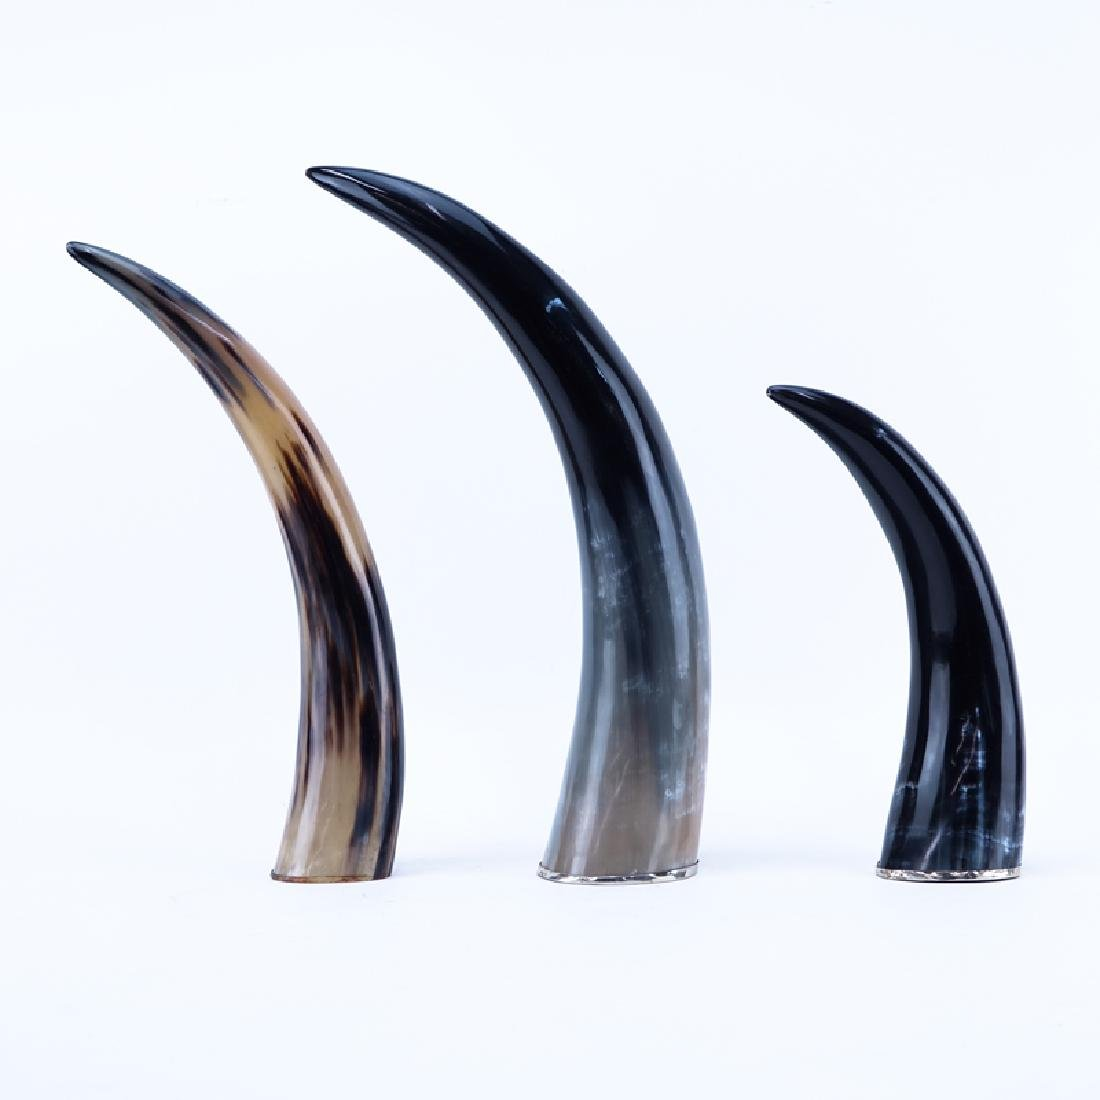 Set of Three (3) Decorative Polished Horns